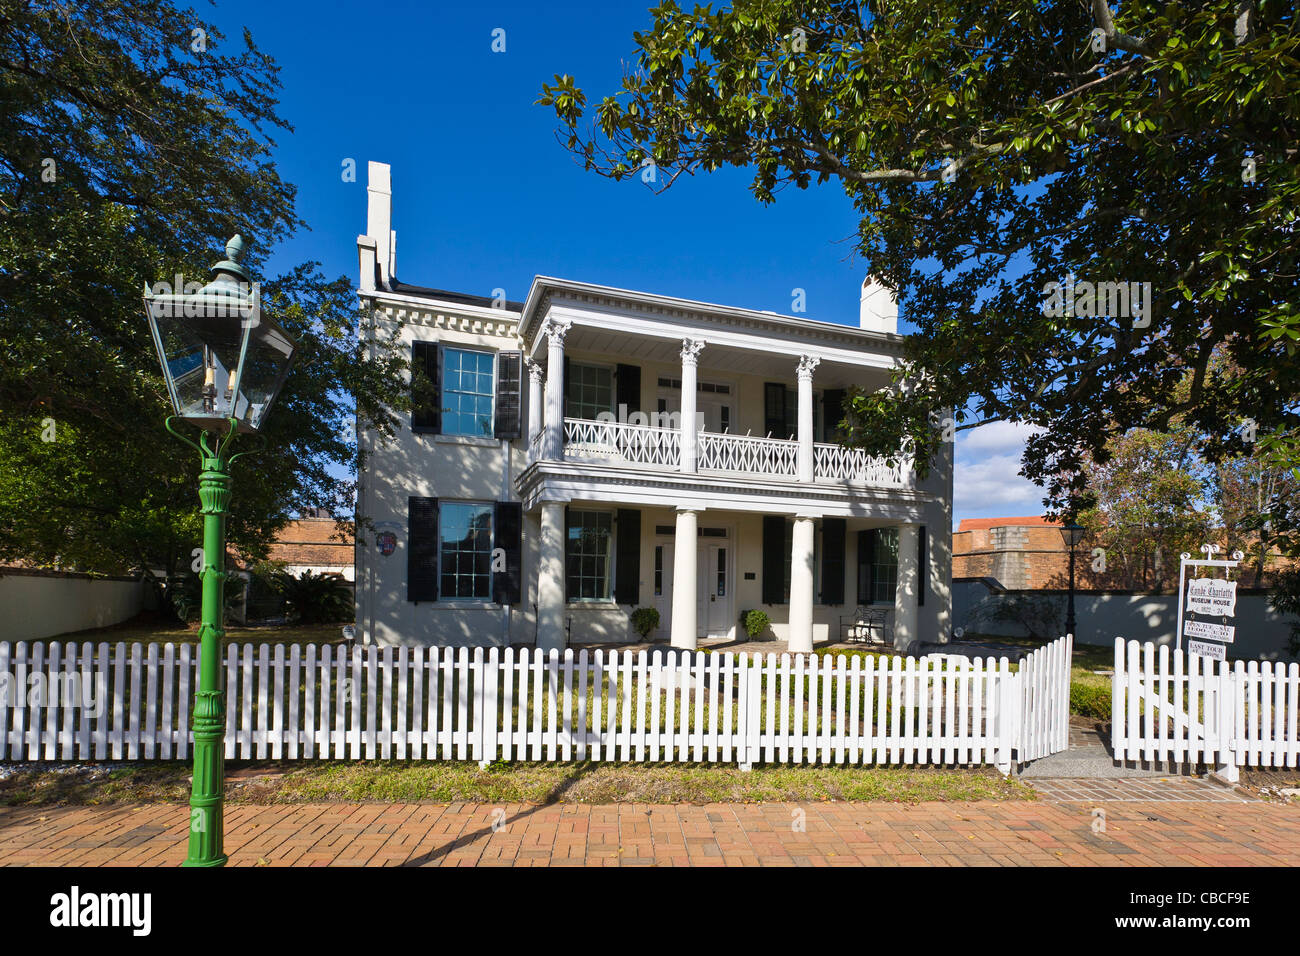 The Conde-Charlotte Museum House, also known as the House of Five Flags in Mobile Alabama - Stock Image